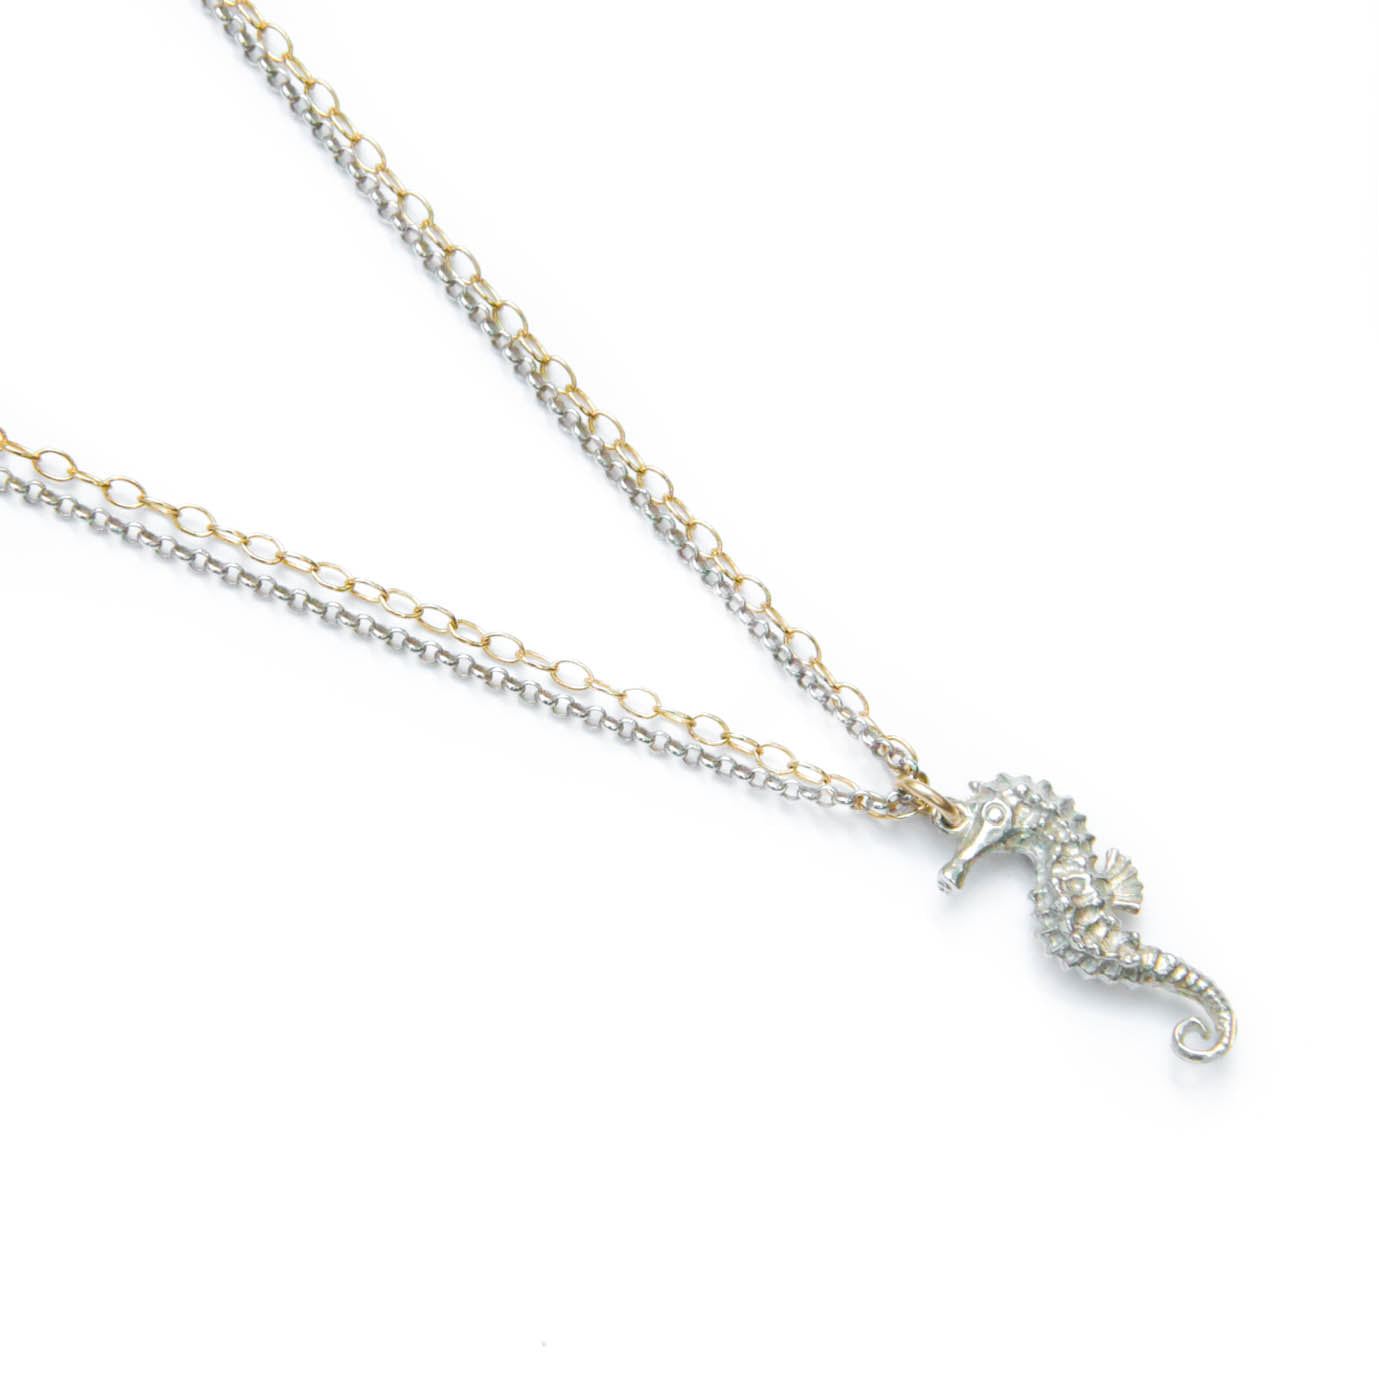 Large silver seahorse necklace